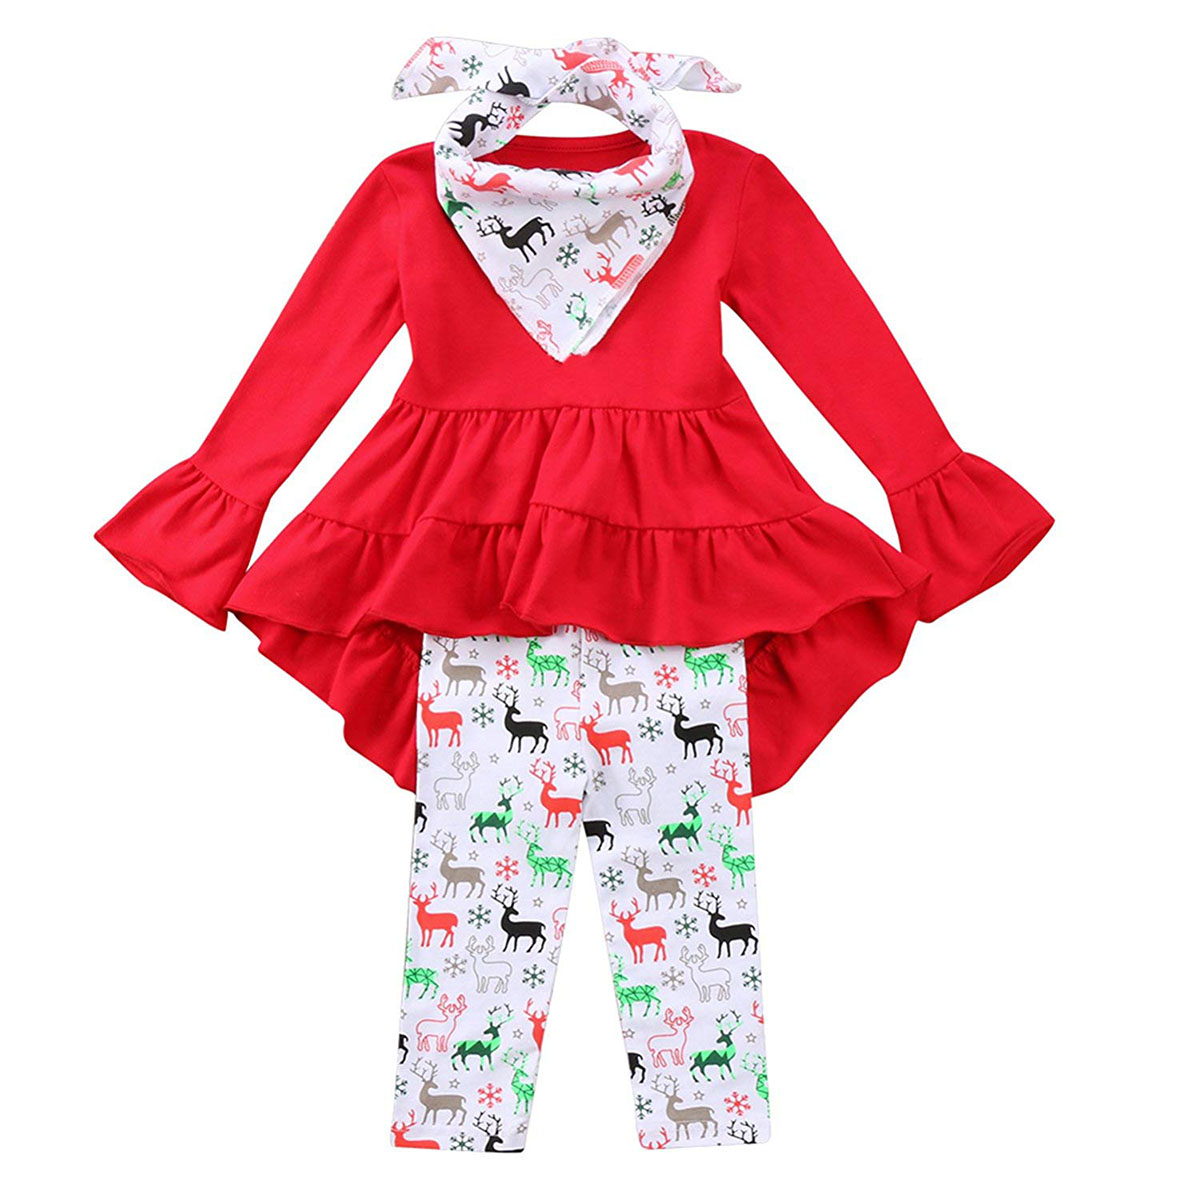 Christmas Baby Clothes Set Toddler Kids Girls Ruffles Irregular Mini Dress Tops+Long Pant Scarf Clothing Outfit Set